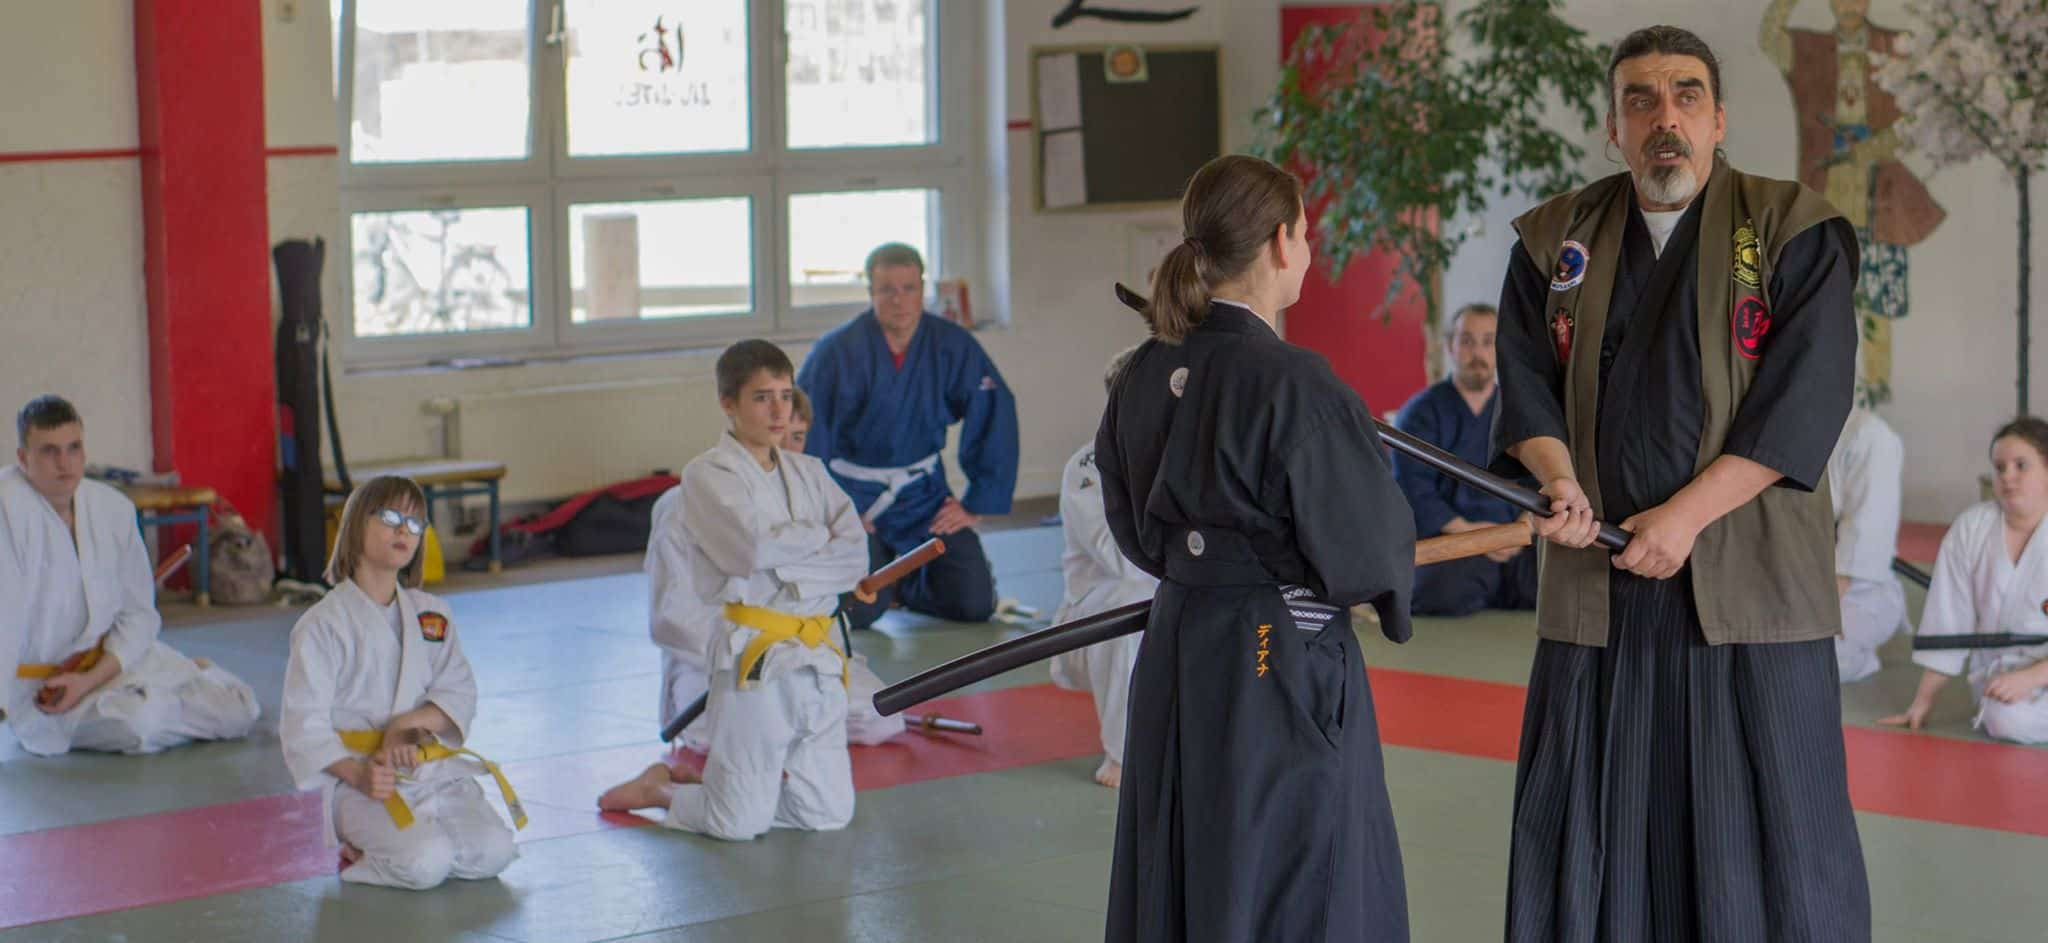 Days Of the Sword Seminar Gohshinkan Ryu Dojo traditionelle Kampfkunst, Schwertkunst und Selbstverteidigung Impressionen aus dem Training